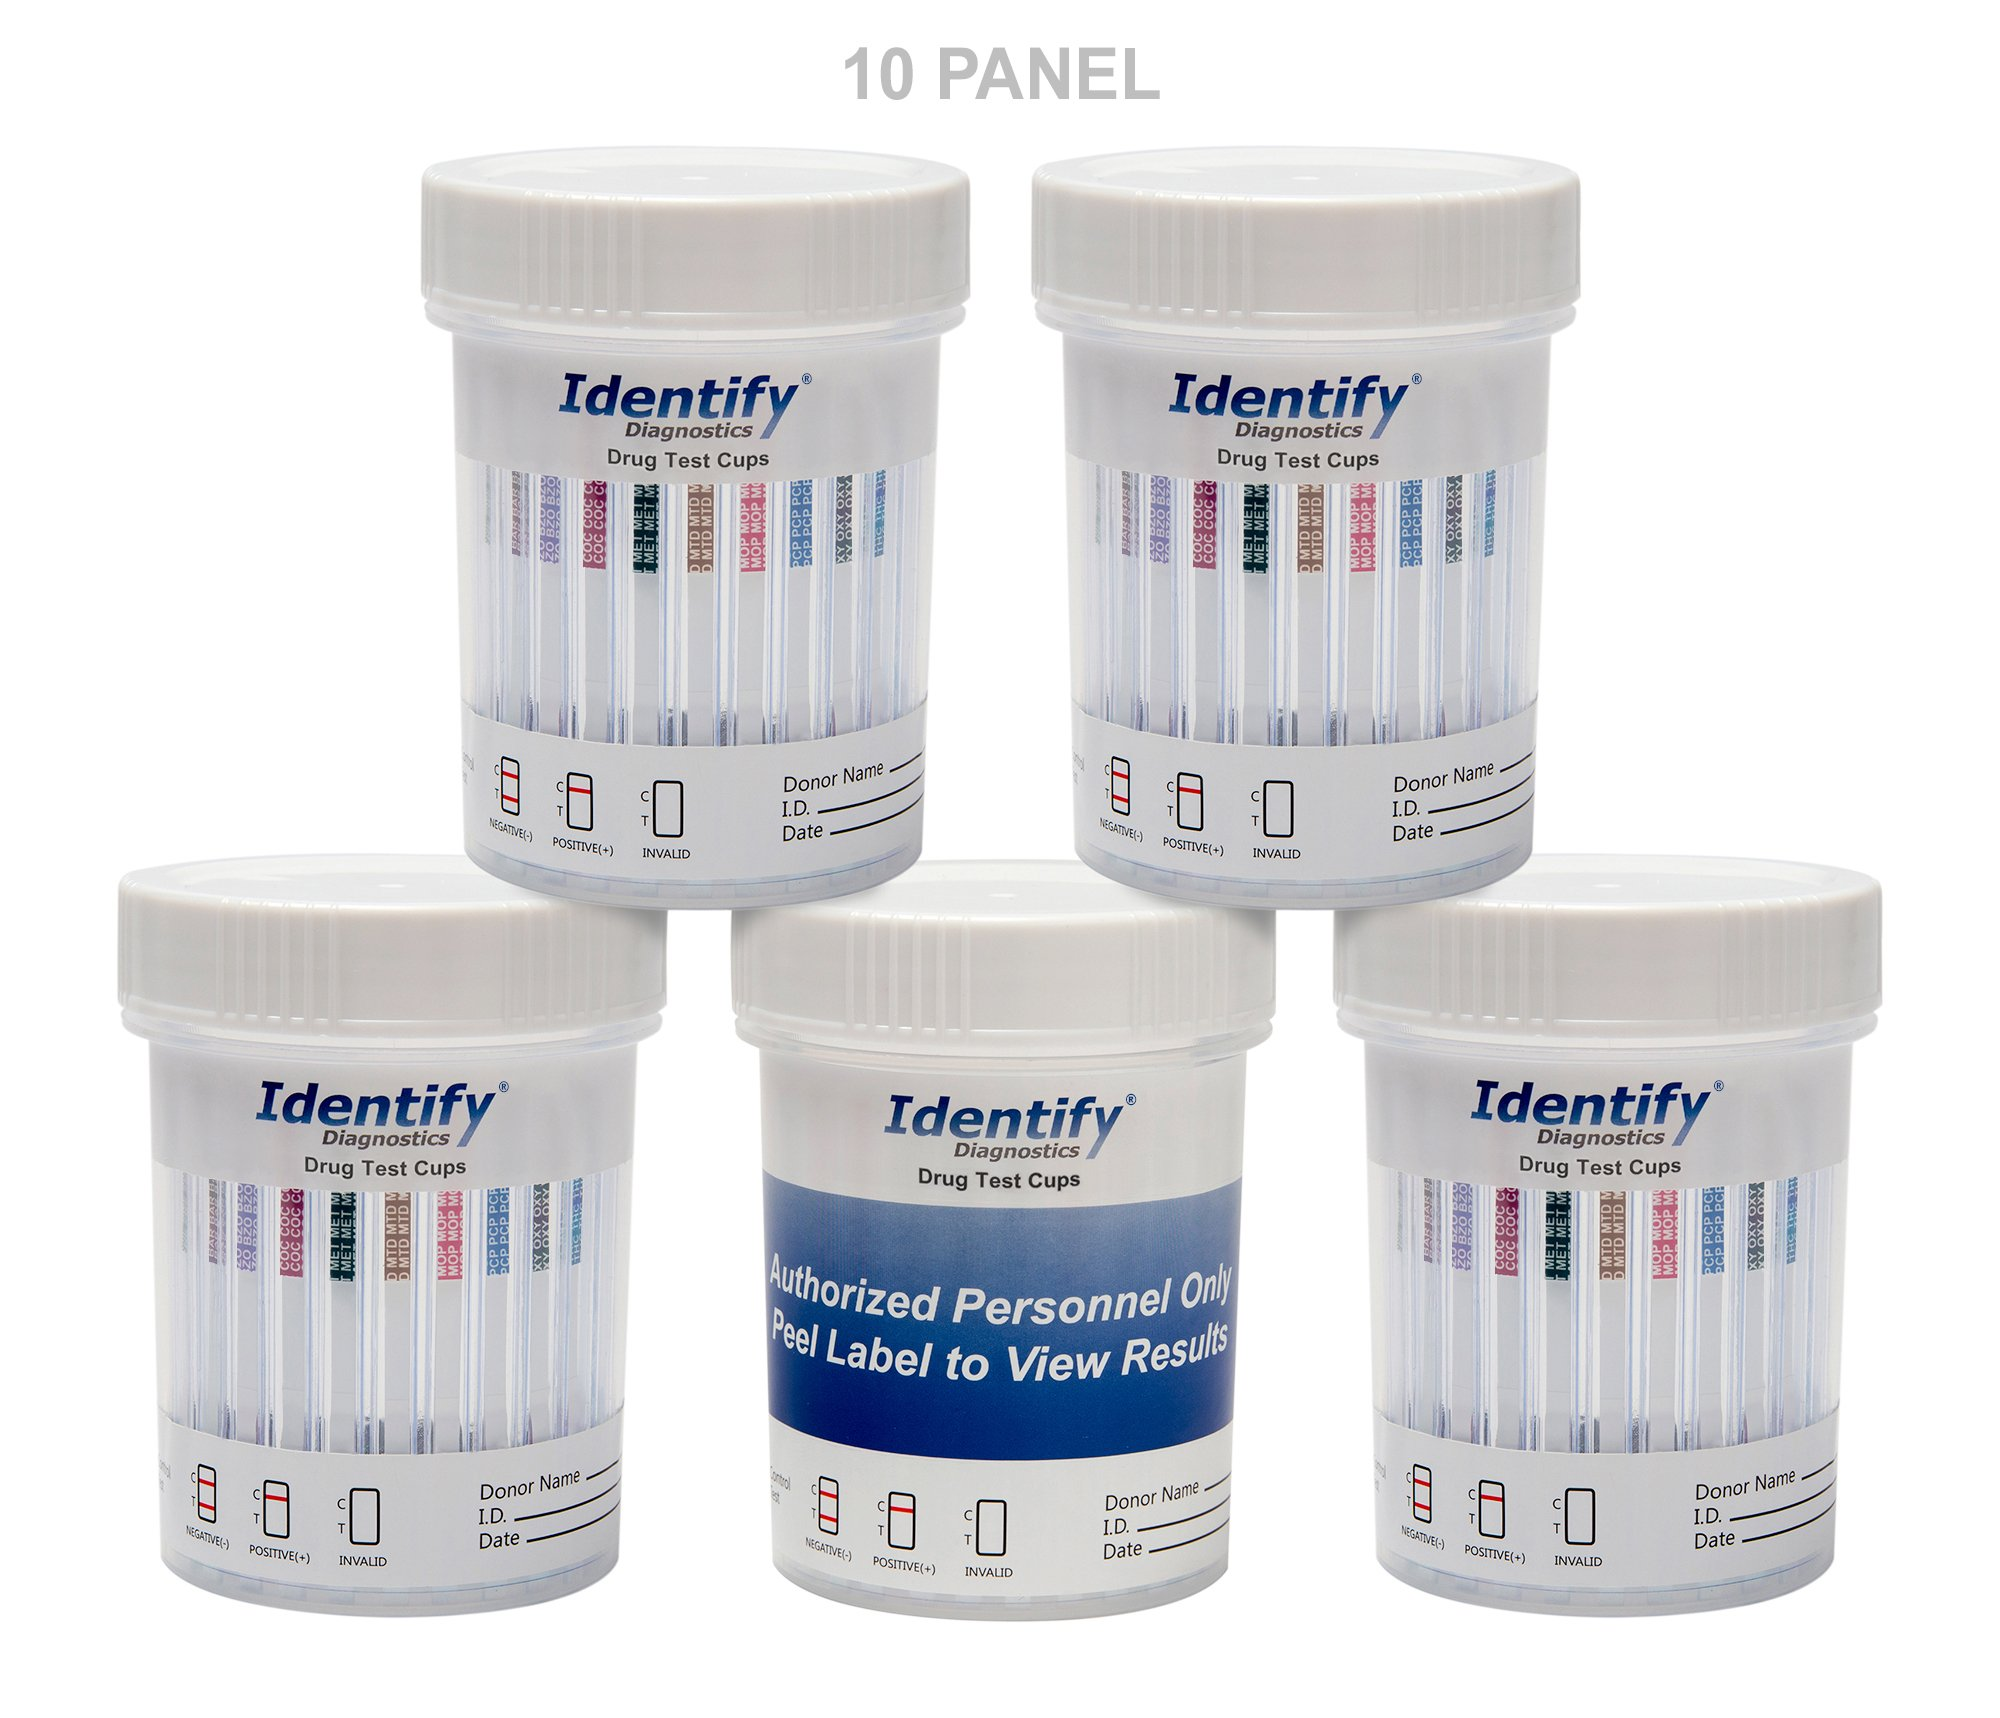 5 Pack Identify Diagnostics 10 Panel Drug Test Cup Testing Instantly for 10 Different Drugs: (THC), (COC), (OXY), (MOP), (AMP), (BAR), (BZO), (MET), (MTD), (PCP) #ID-CP10-AZ